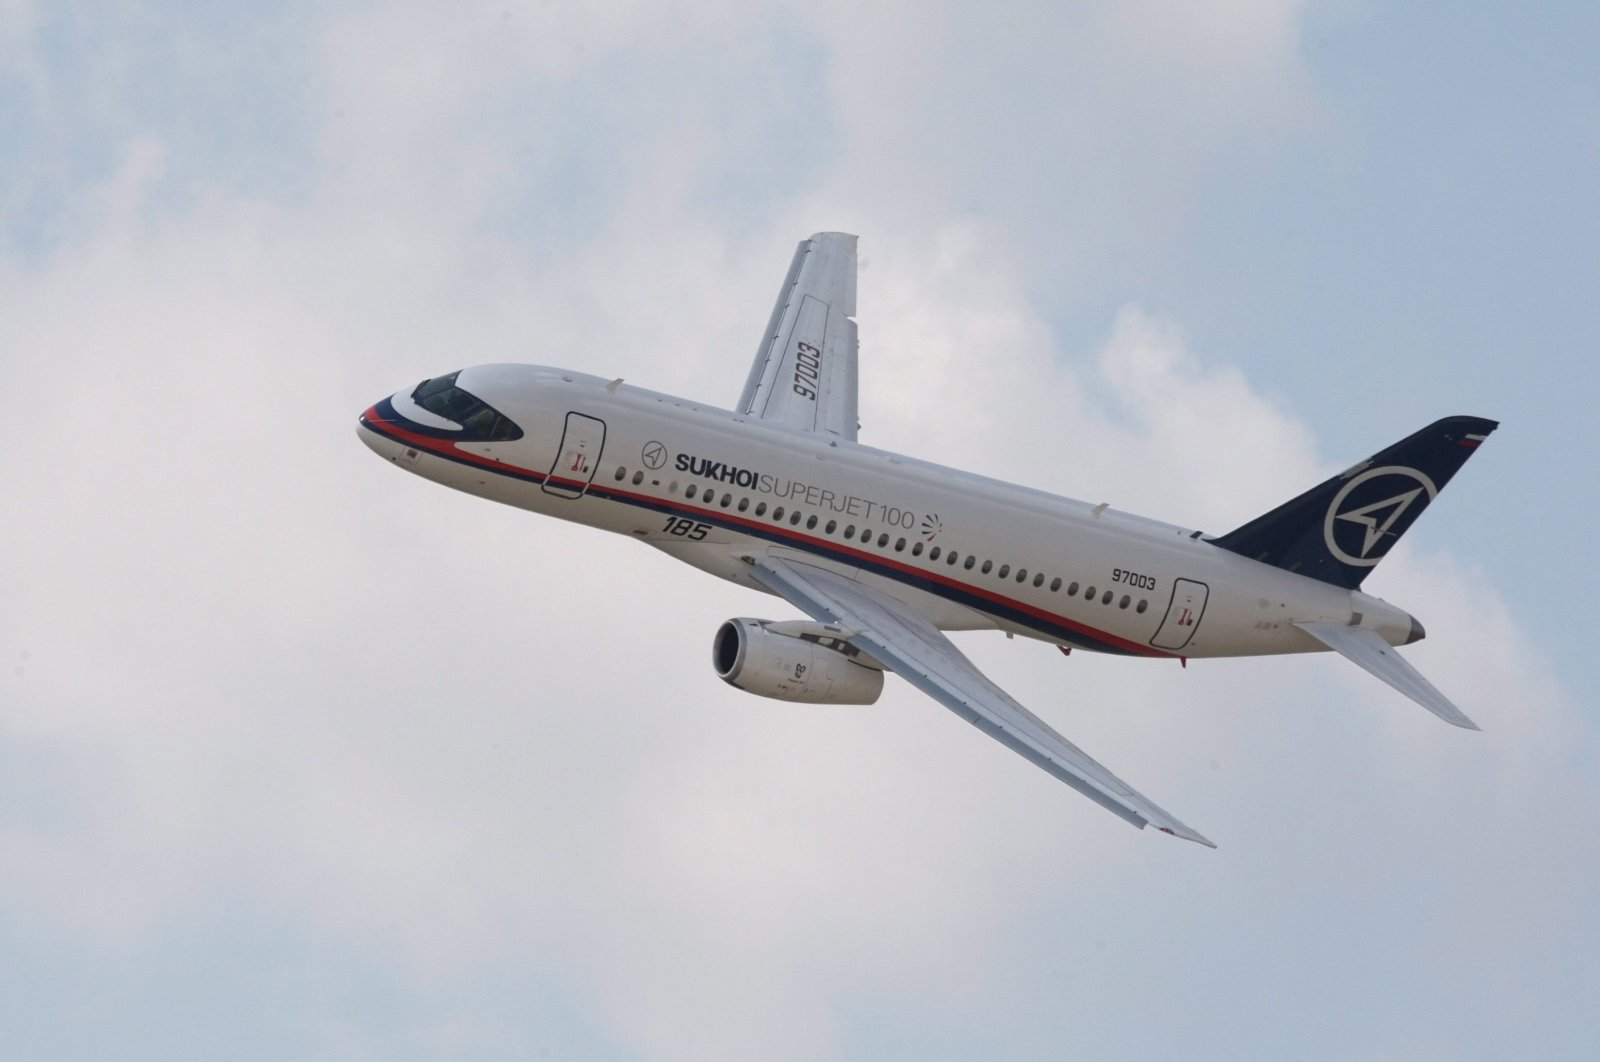 This file photo shows a Sukhoi Superjet 100 airplane during the Moscow International Air-Space, Russia, Aug. 18 2009. (EPA)